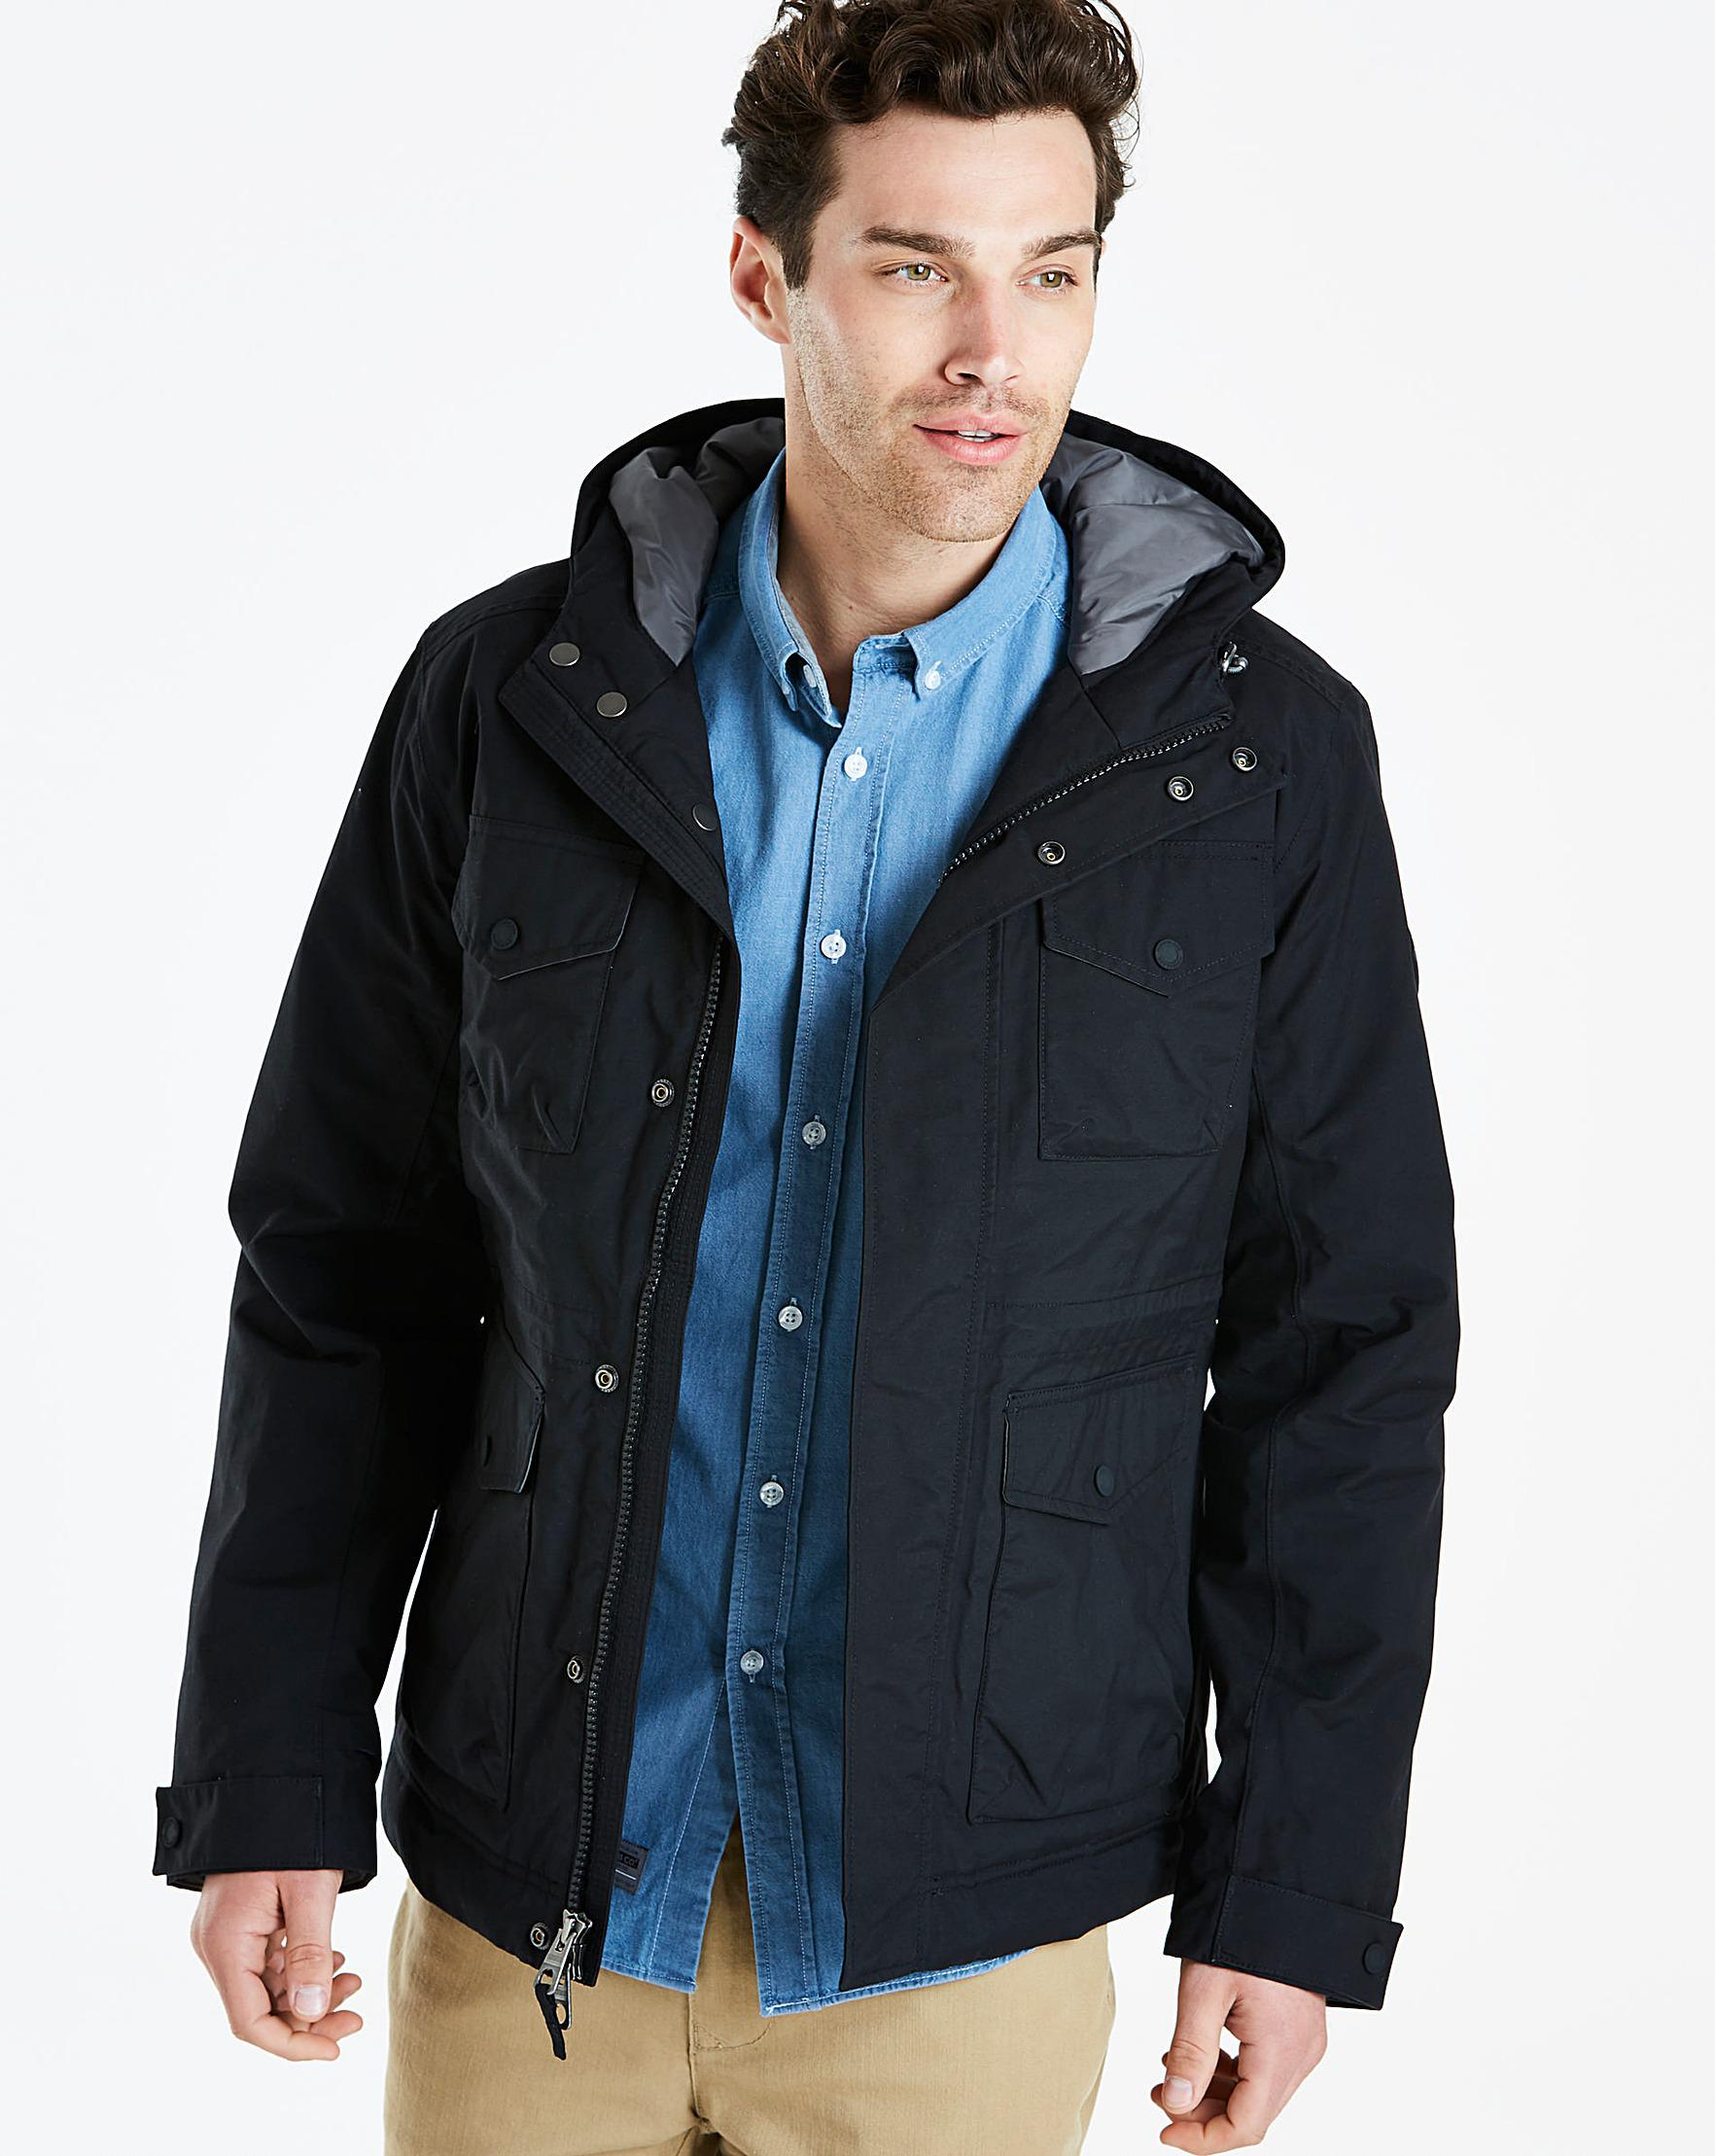 Timberland Isolation Cruiser Jacket in Black for Men - Lyst 2f8fa5c61e